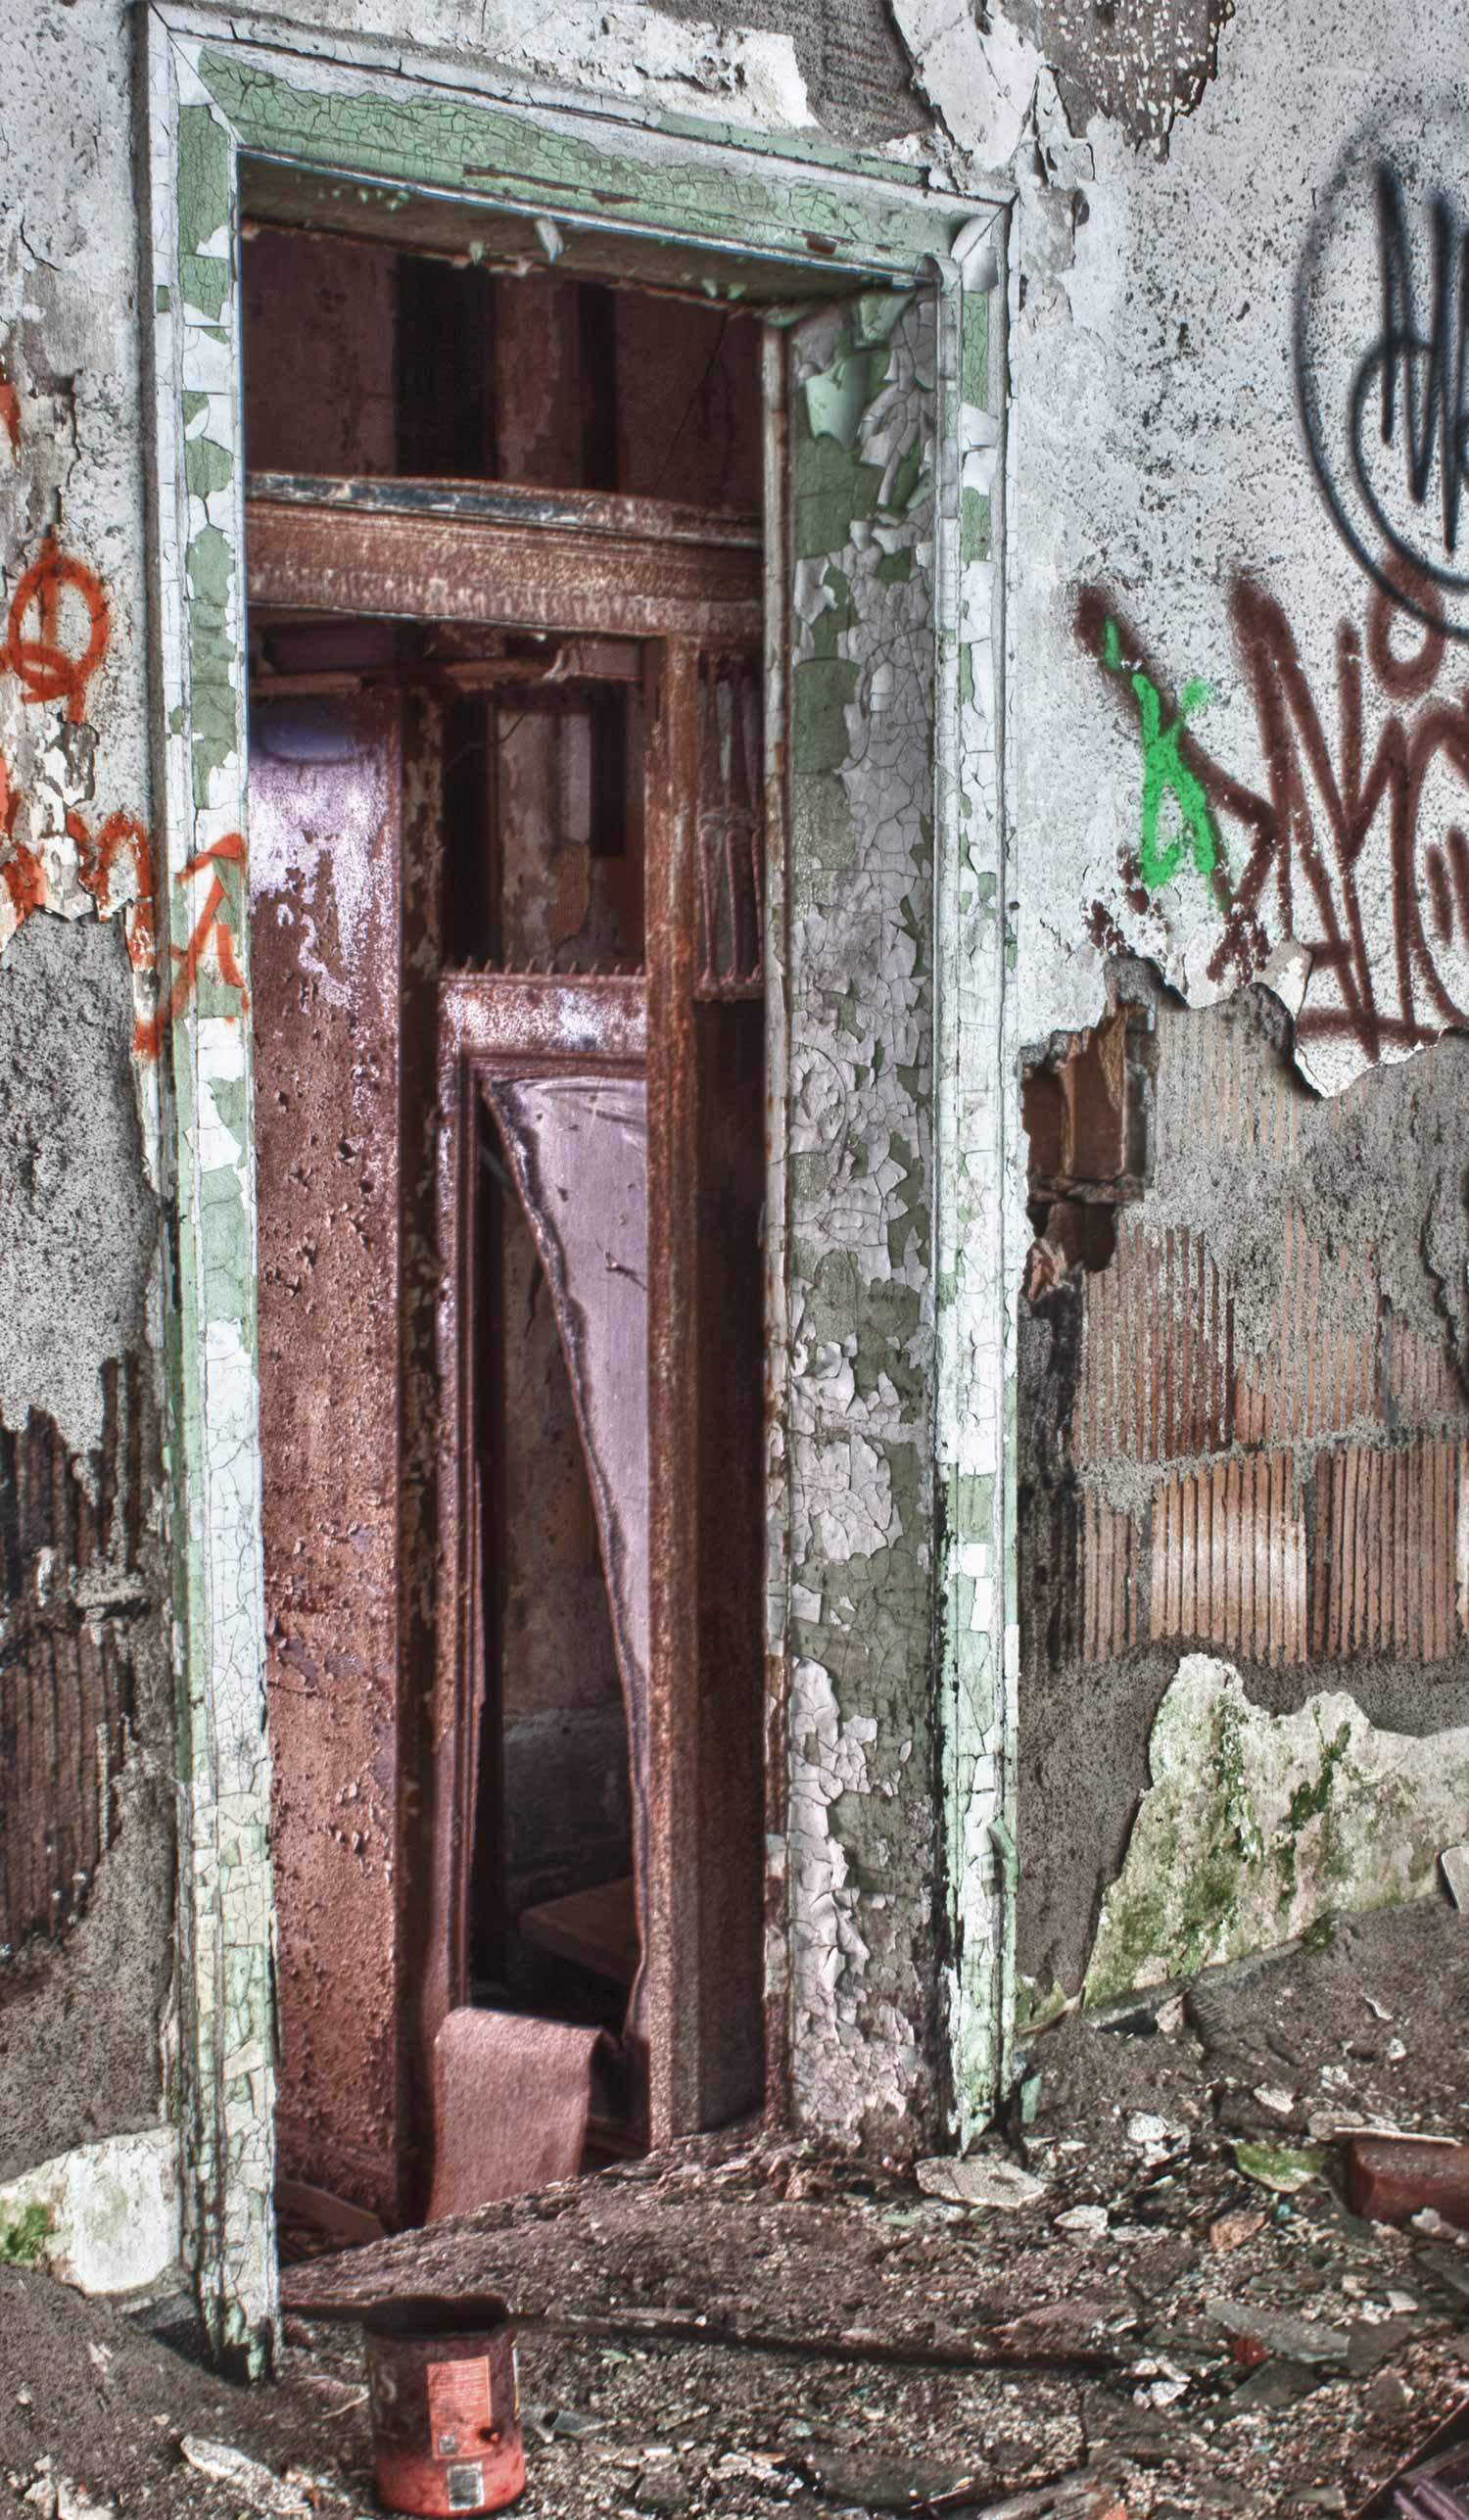 Crashed Elevator at the Packard Automotive Plant